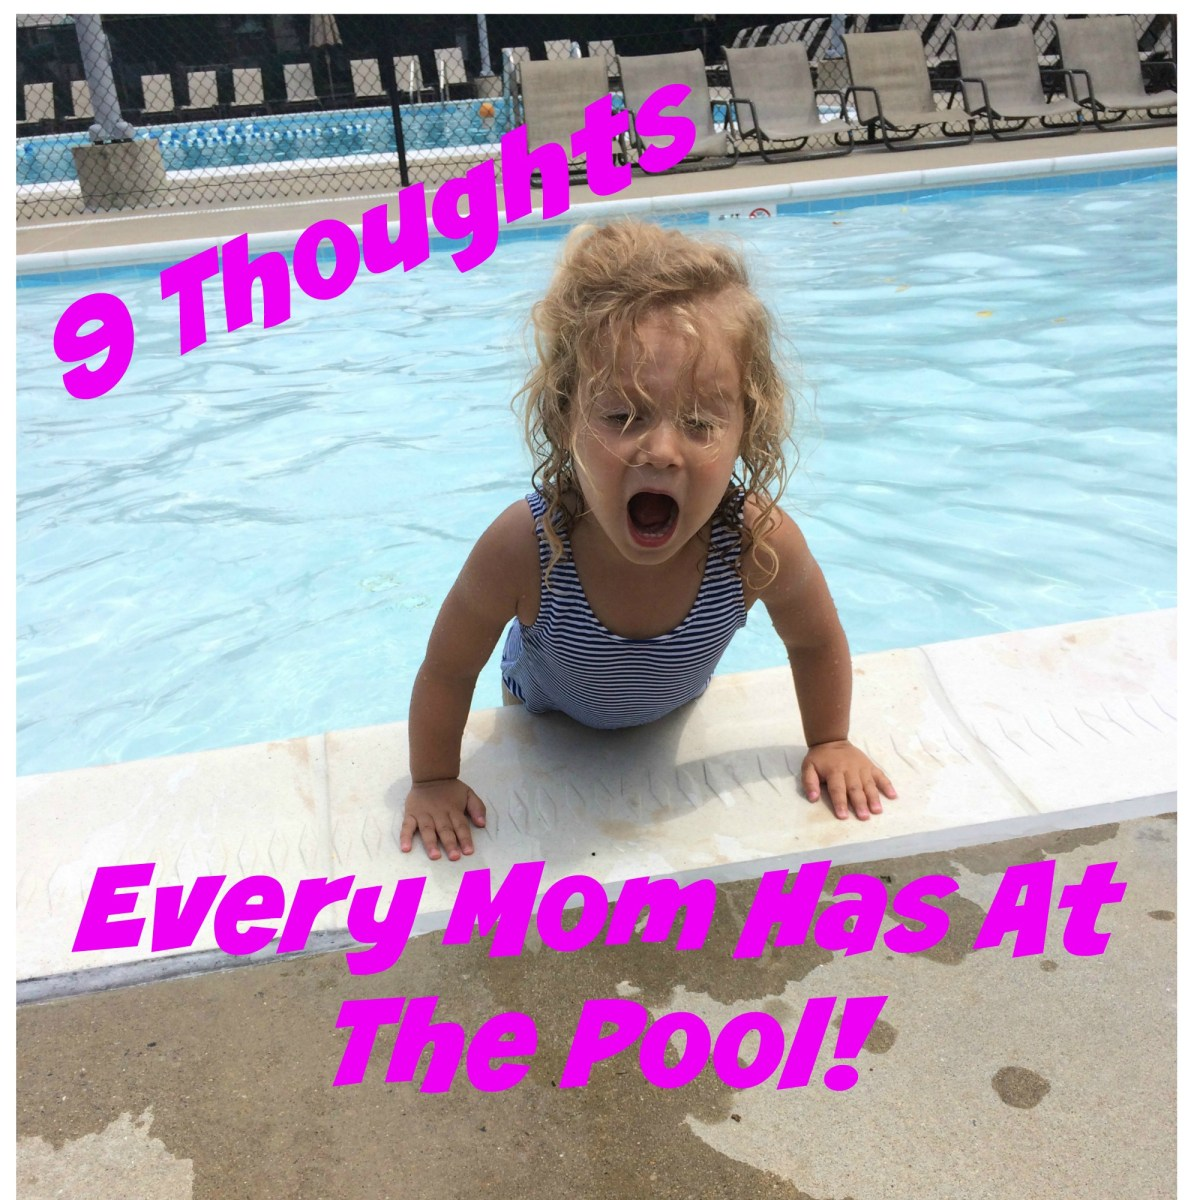 9 Thoughts Every Mom Has at The Pool